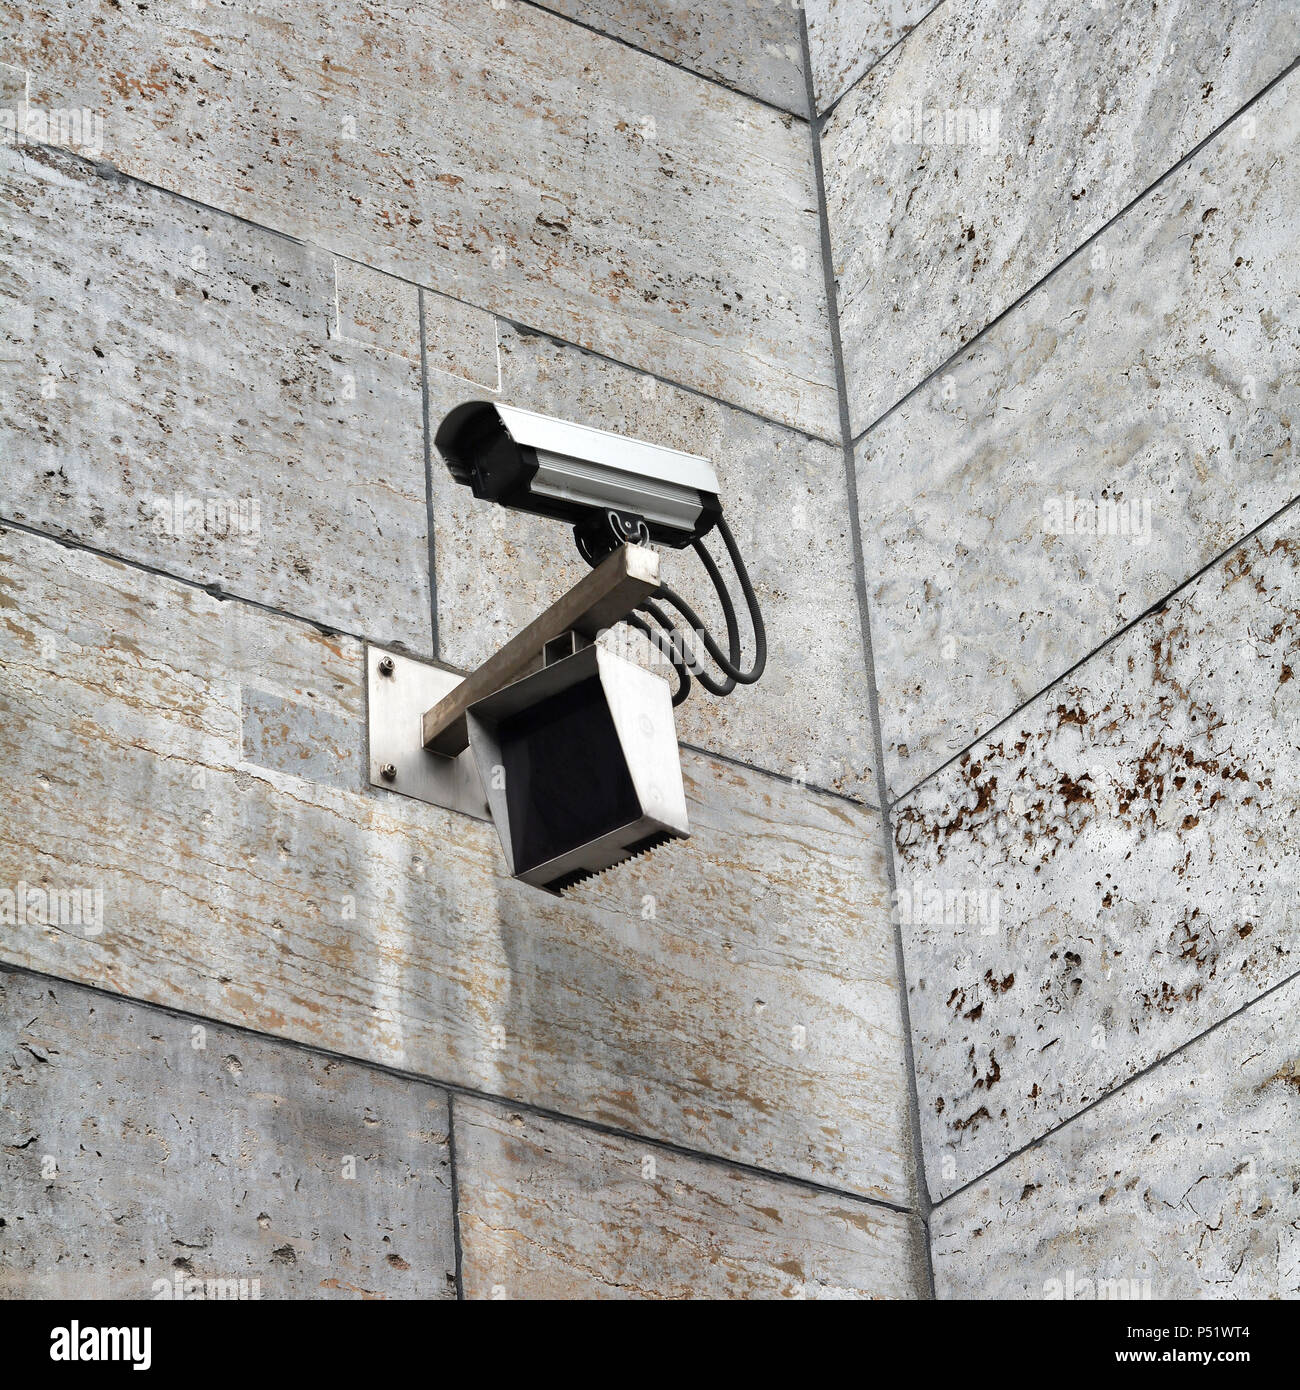 Video surveillance camera at a building in Berlin - Stock Image